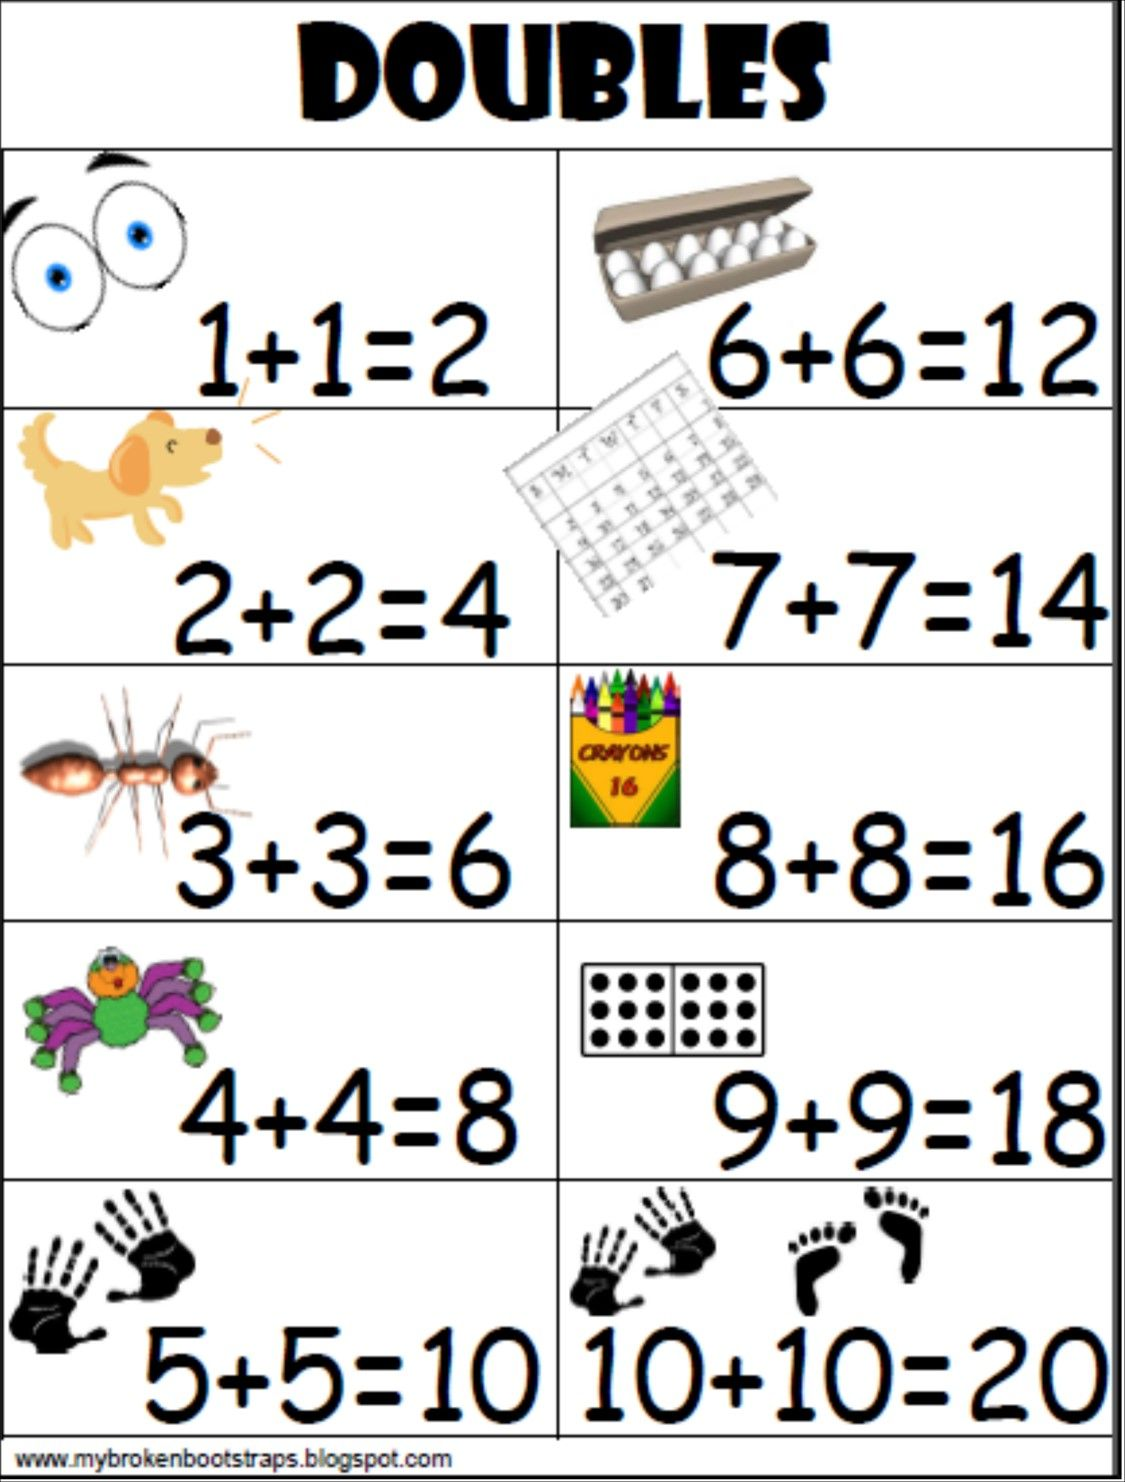 Free Doubles Anchor Chart This Website Has Fantastic Resources And Monday Freebies First Grade Math Math Doubles Math Anchor Charts Adding doubles worksheet for